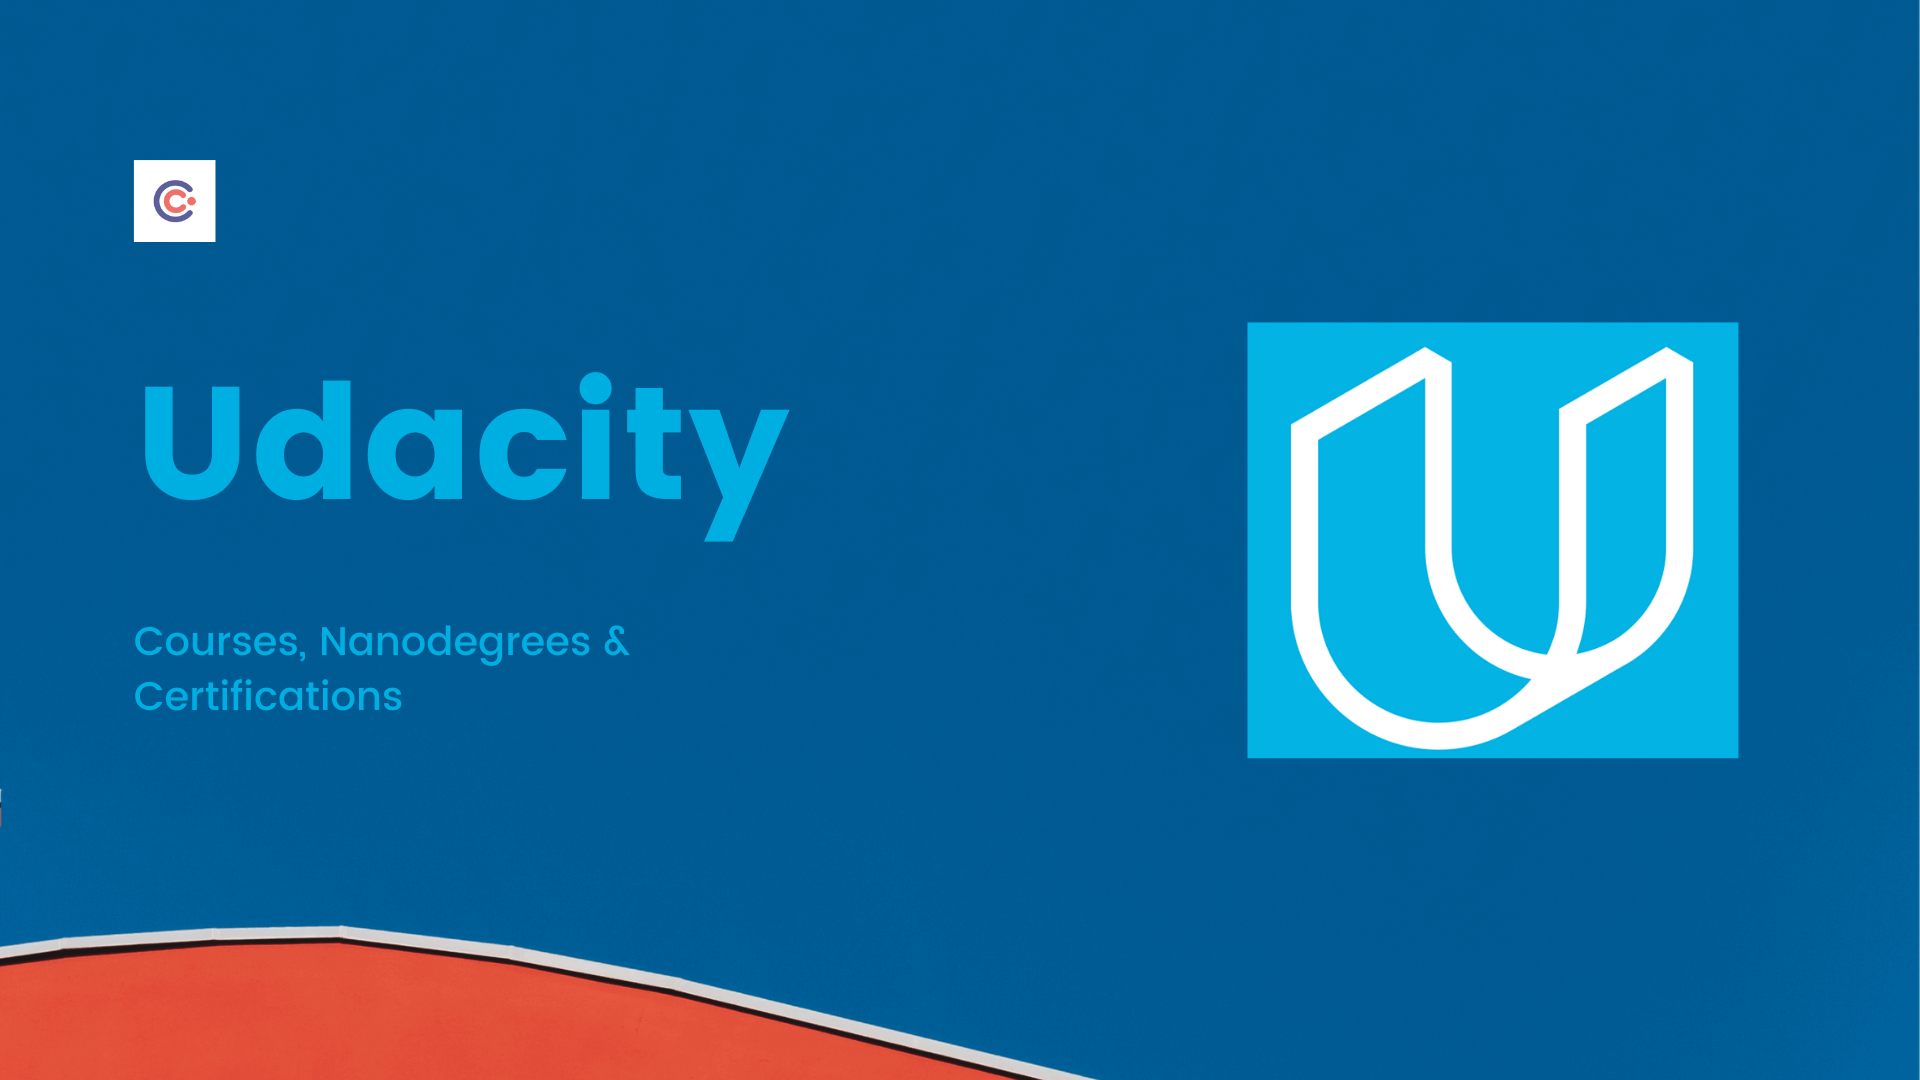 10 Best Udacity Courses, Nanodegrees & Certifications